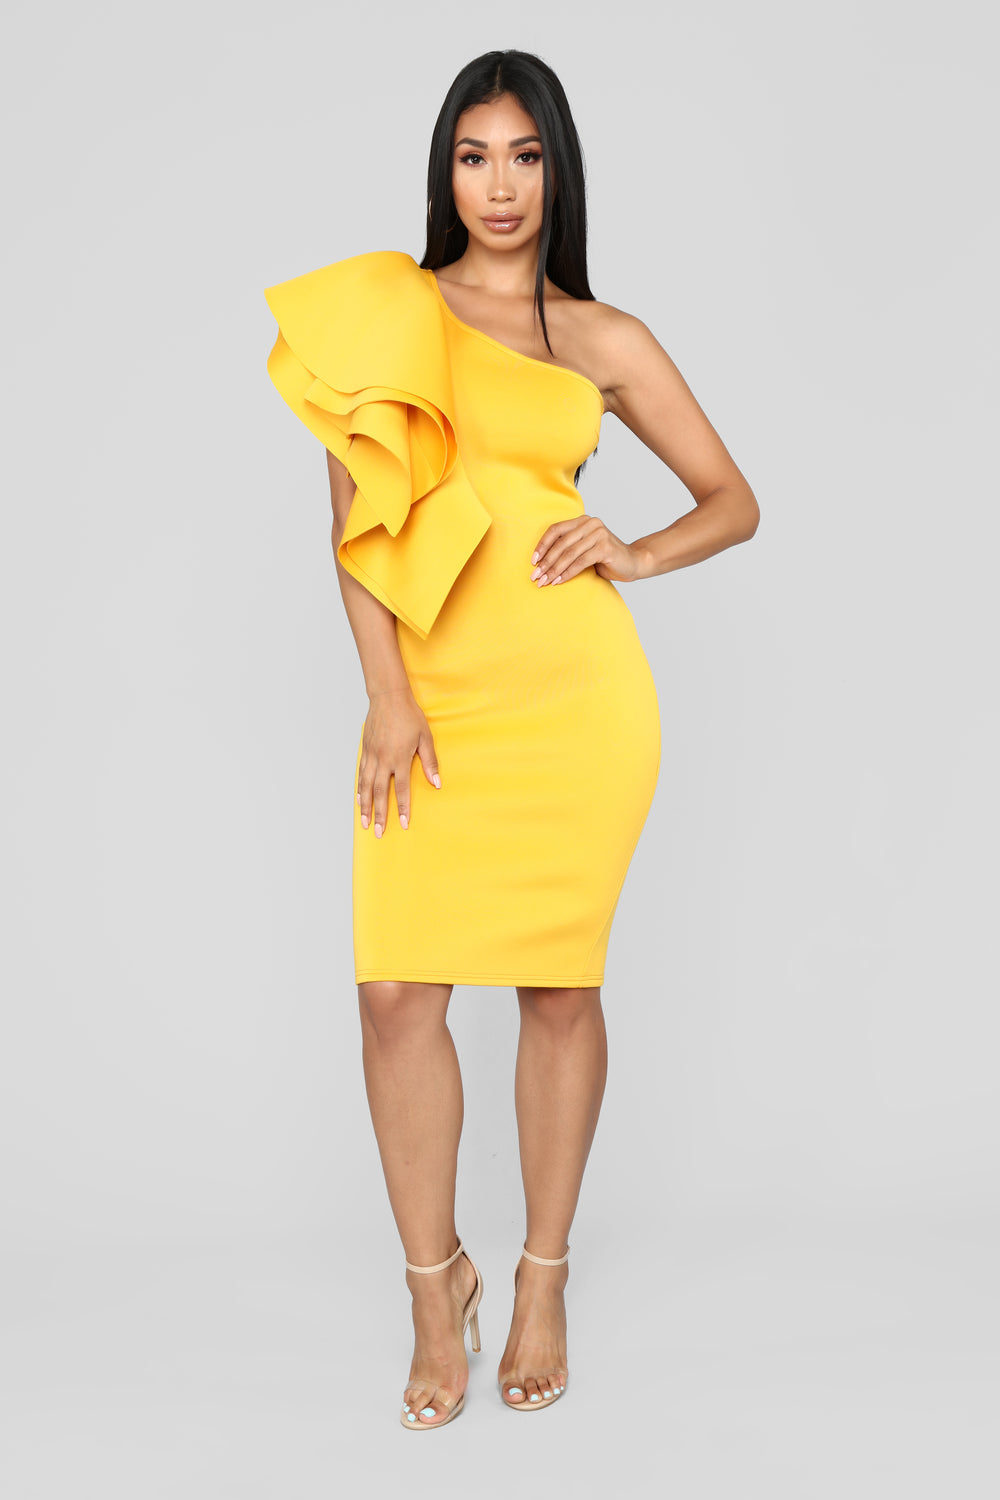 Out All Night Dress - Yellow